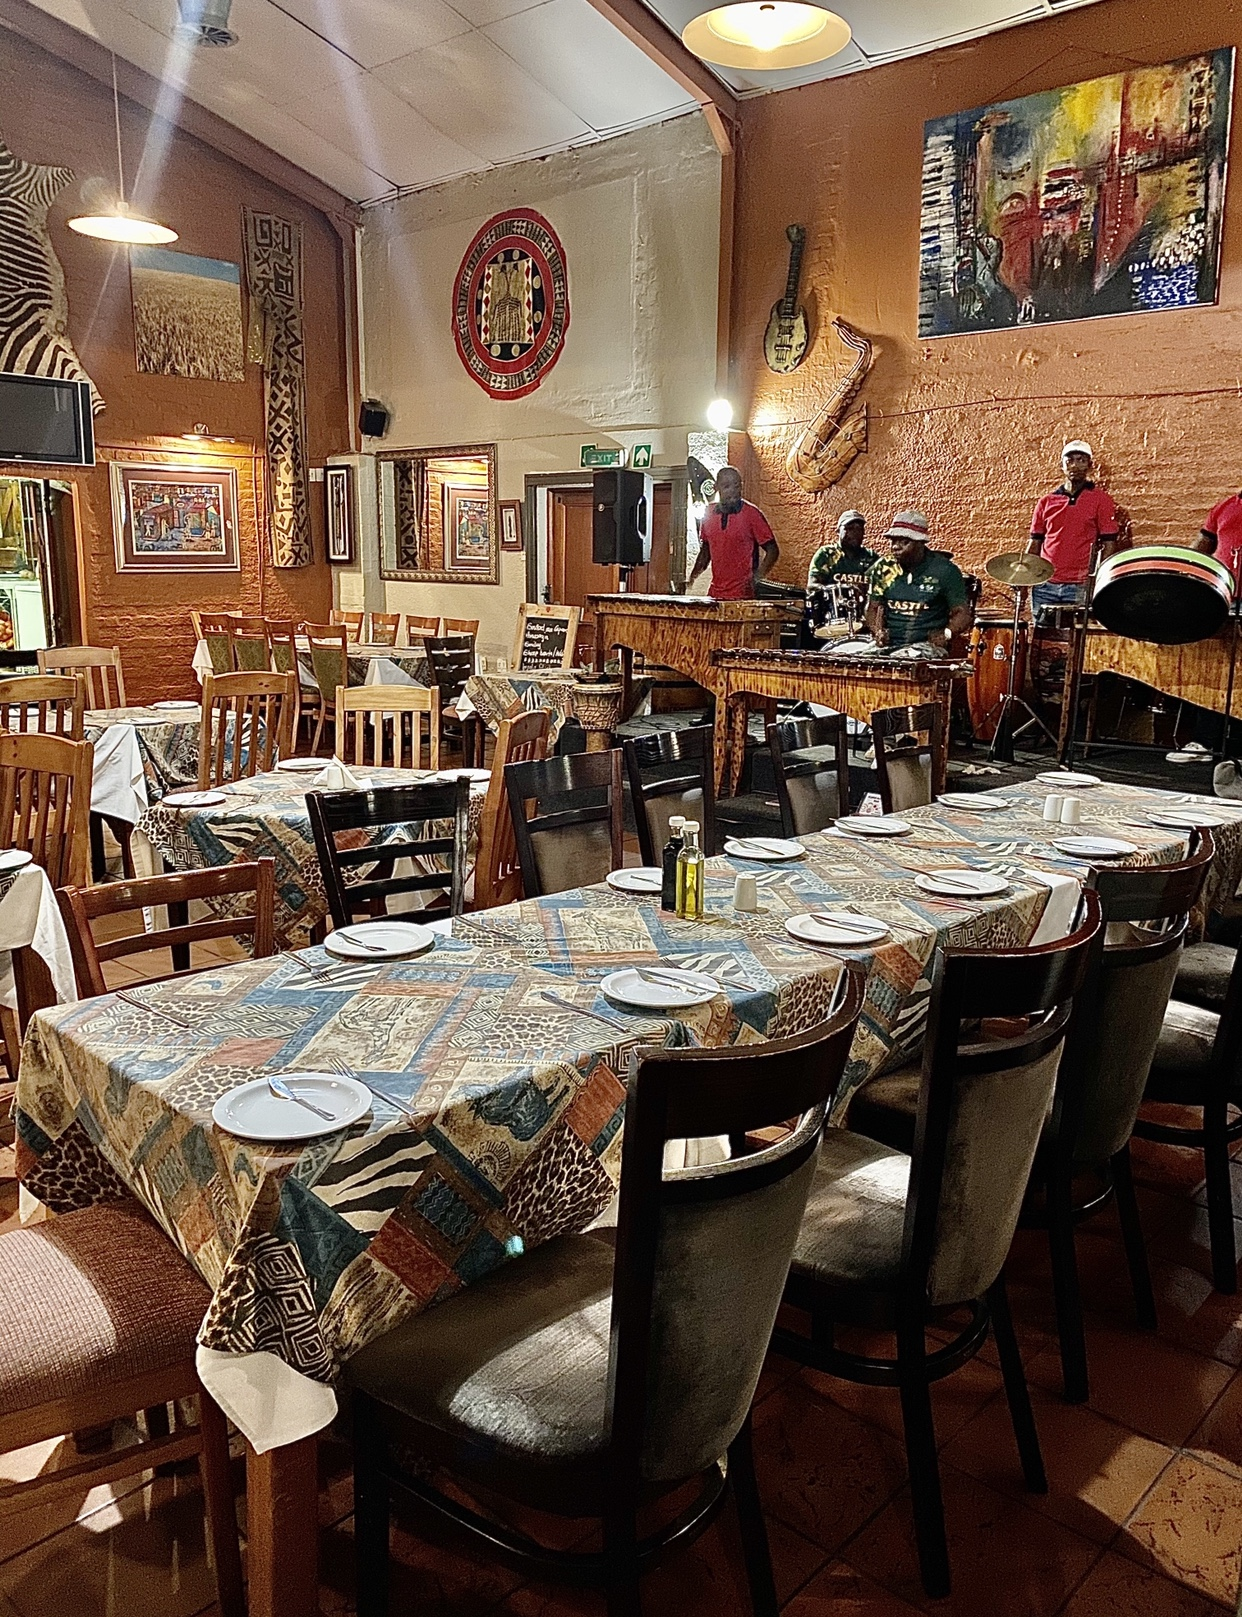 Marco's African Restaurant in Cape Town's city bowl